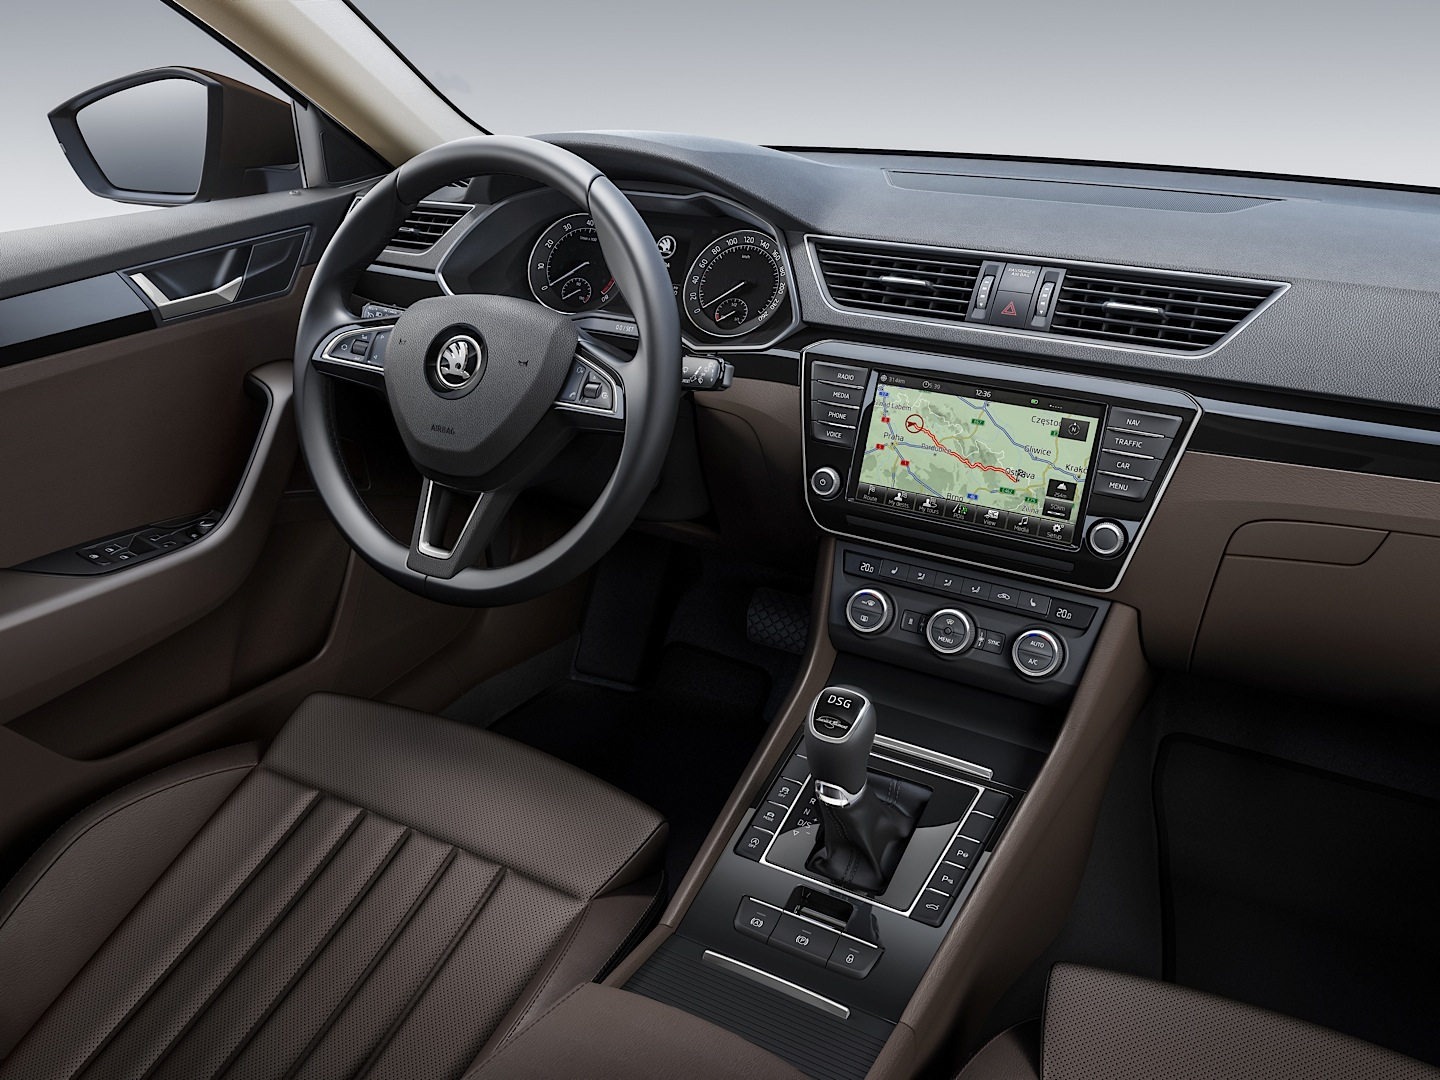 2015 Skoda Superb Interior First Photos Revealed Passat